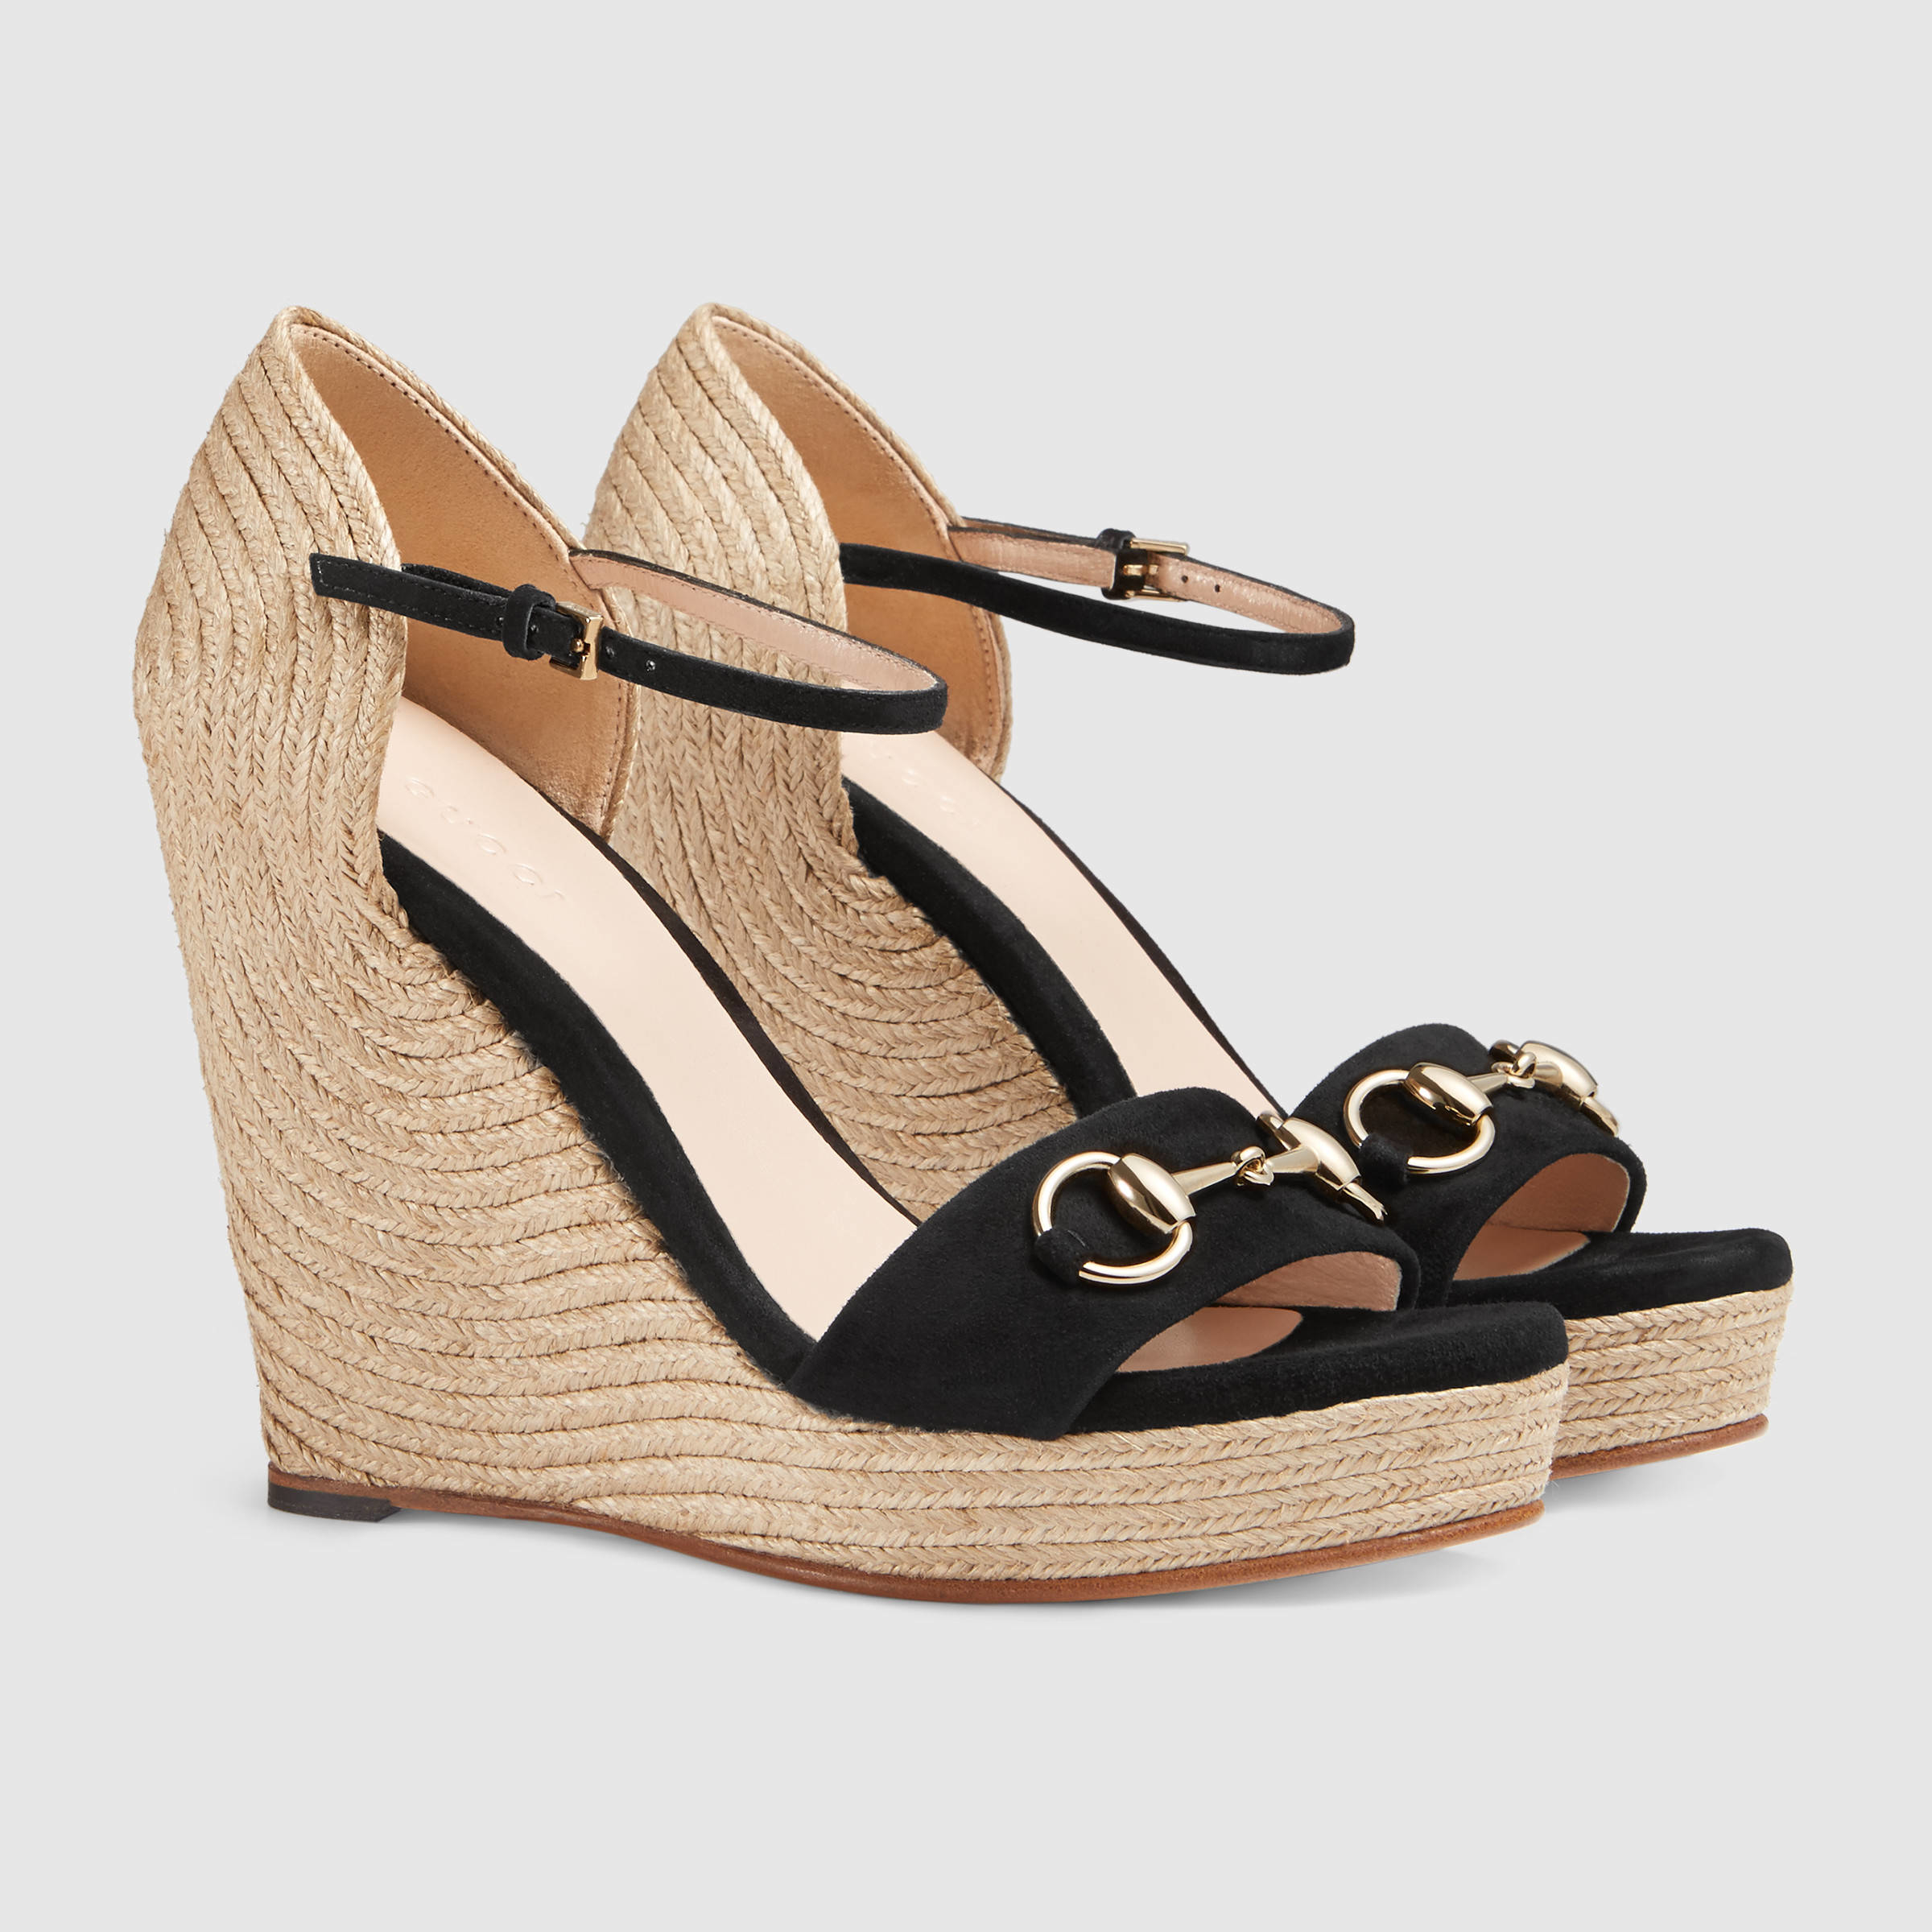 3a23ce0d87f3 Lyst - Gucci Horsebit Suede Wedge in Natural